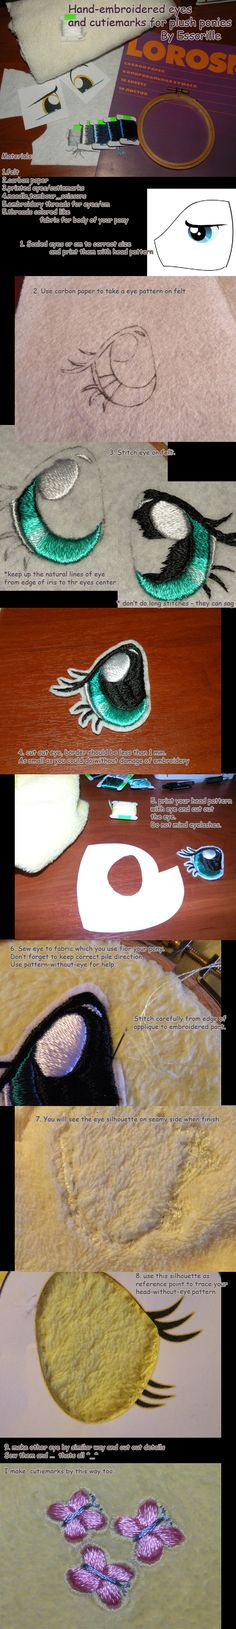 hand-embroidered plush eyes tutorial by *Essorille on deviantART